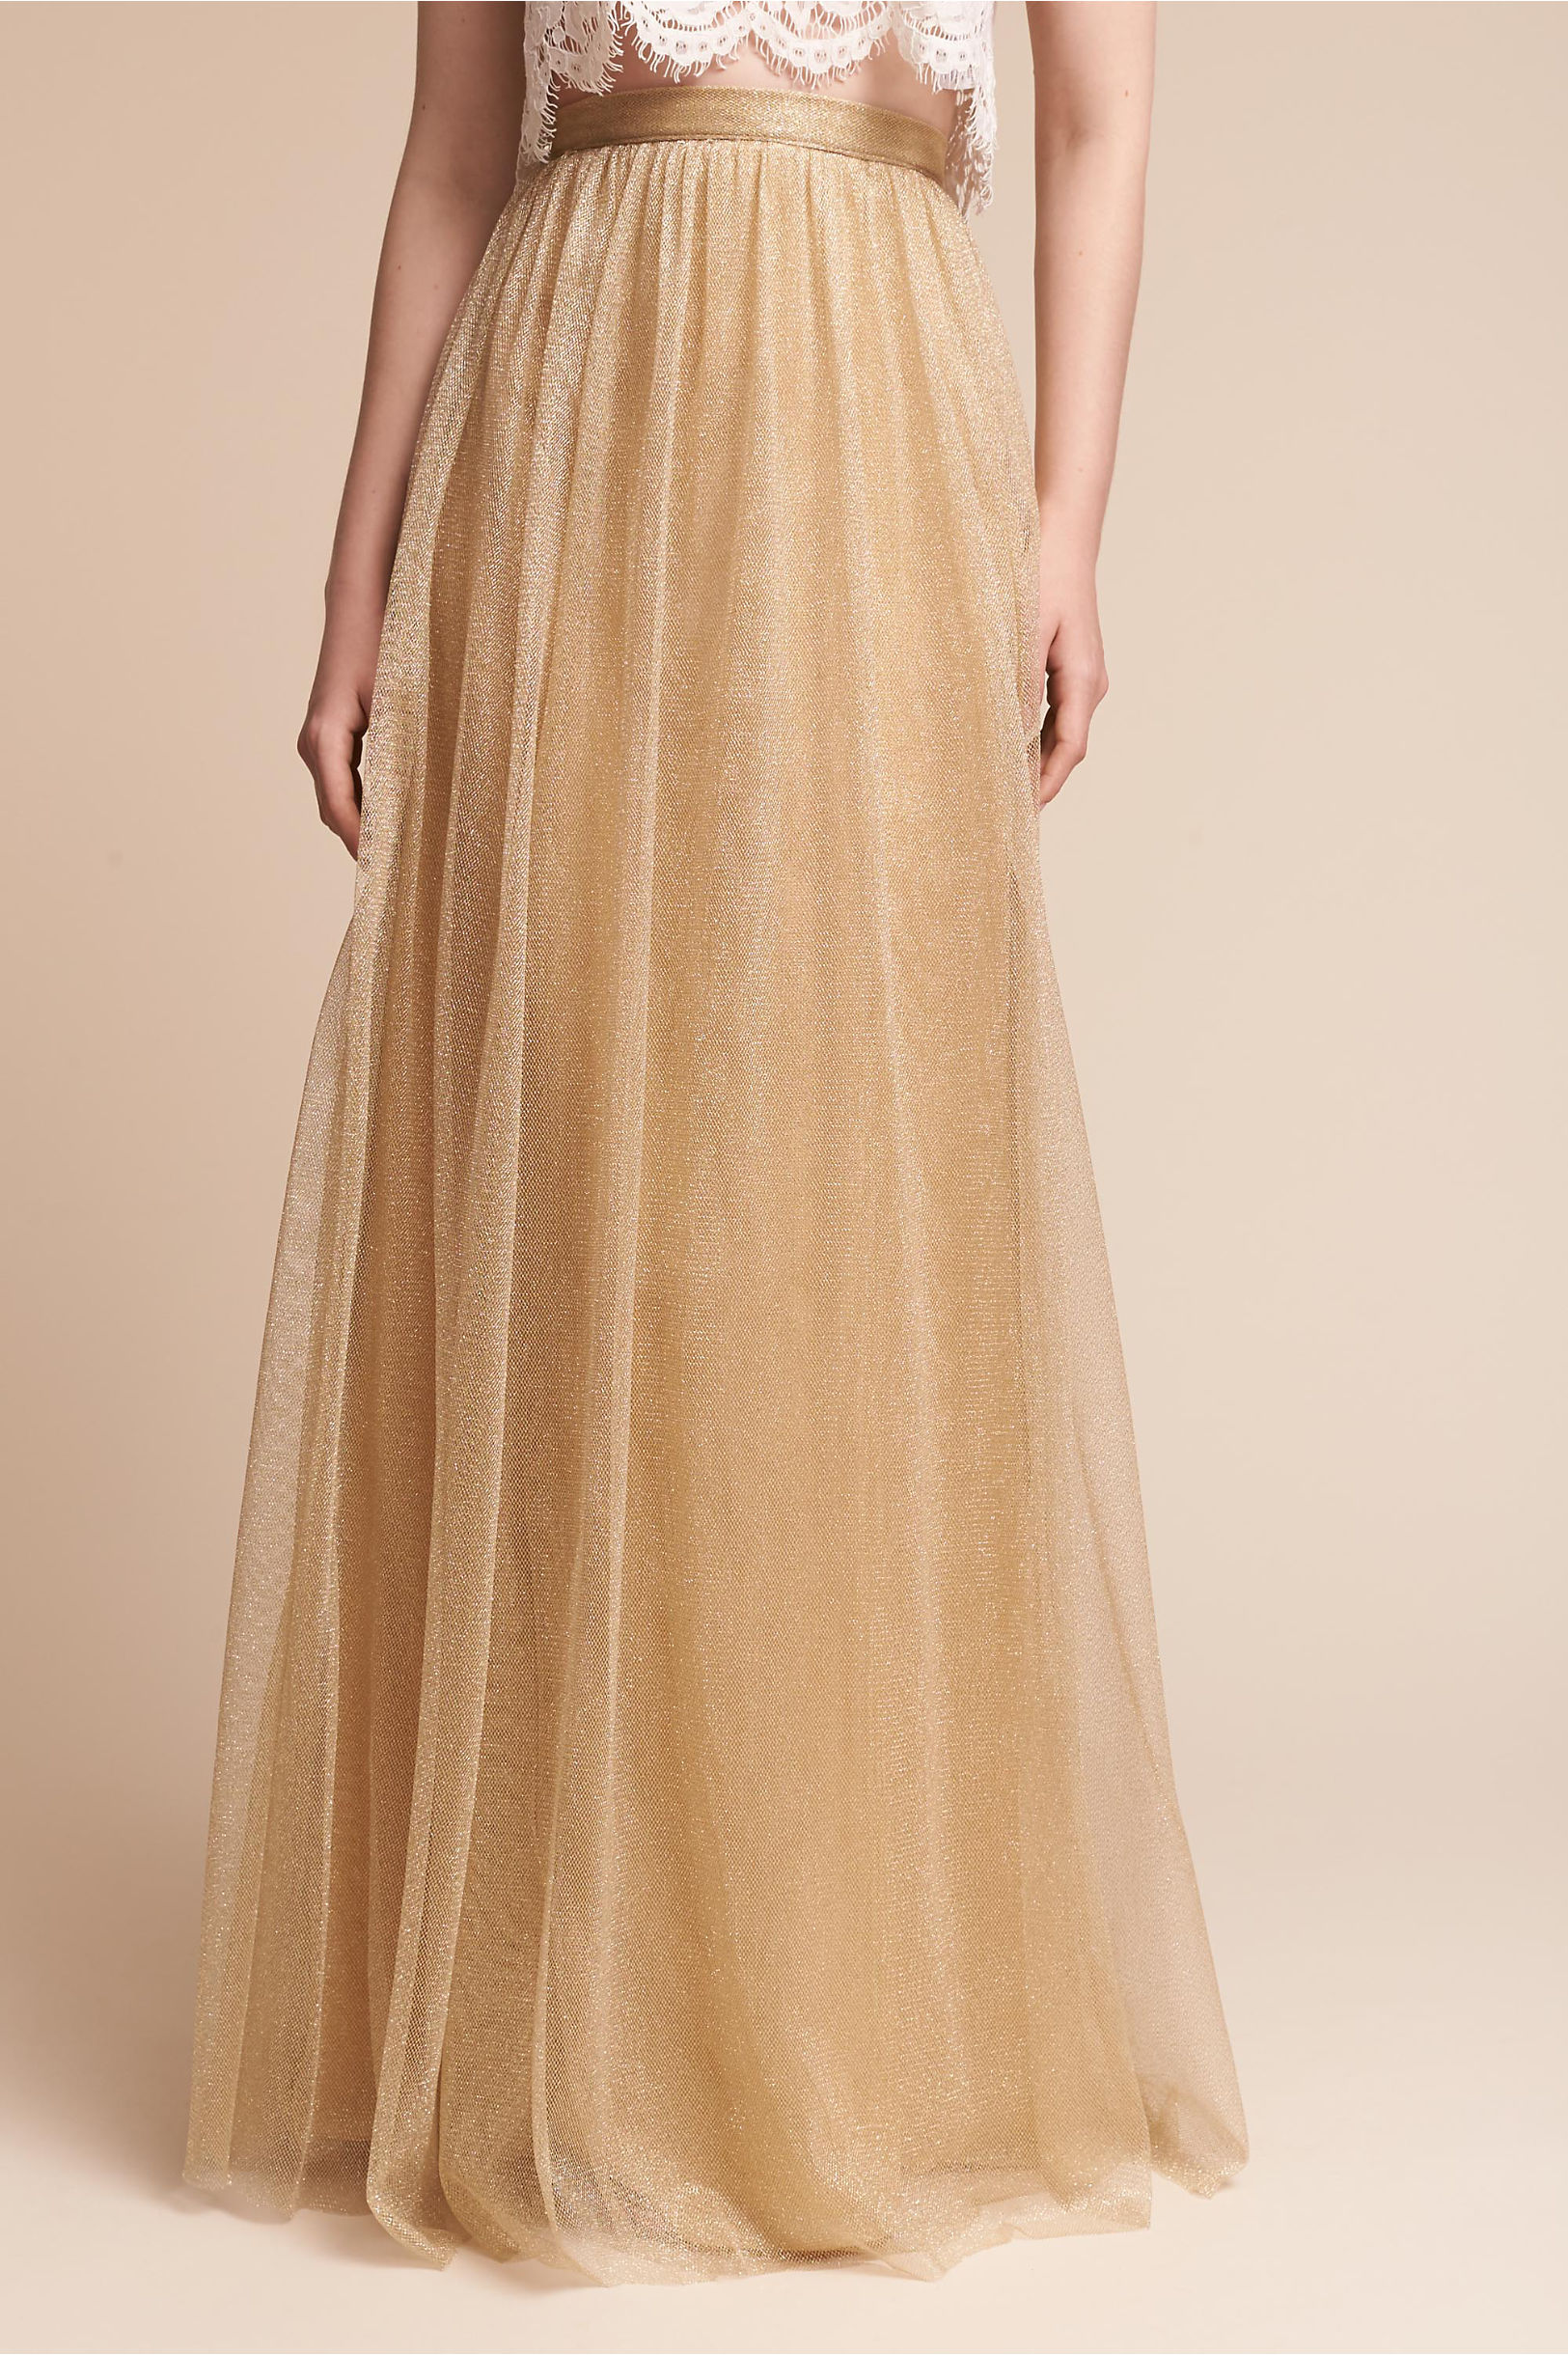 Louise Tulle Skirt in Sale | BHLDN